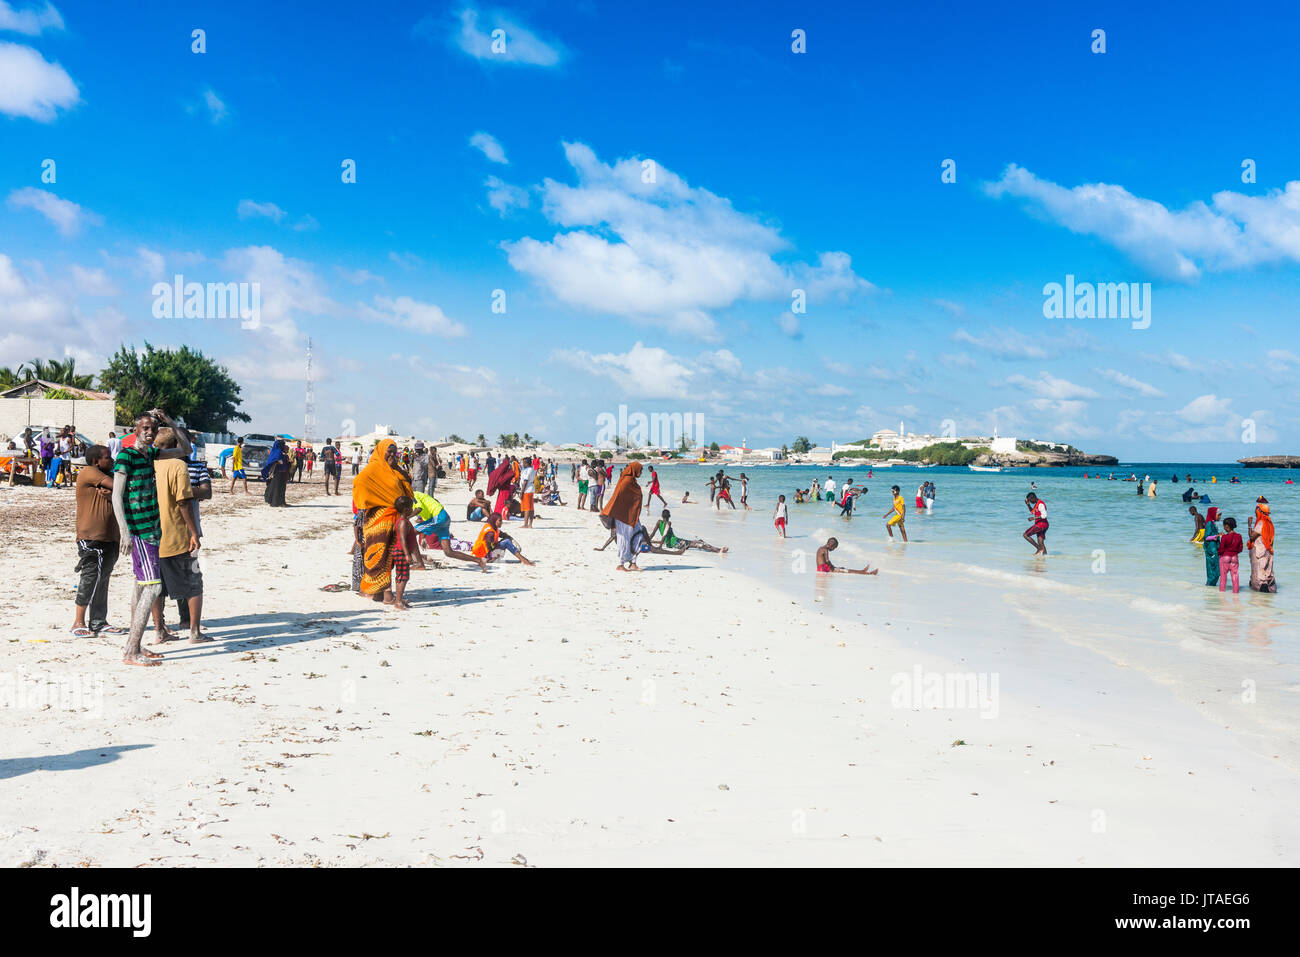 Busy Beach Filled With Locals Jazeera Beach Somalia Africa Stock Photo Alamy